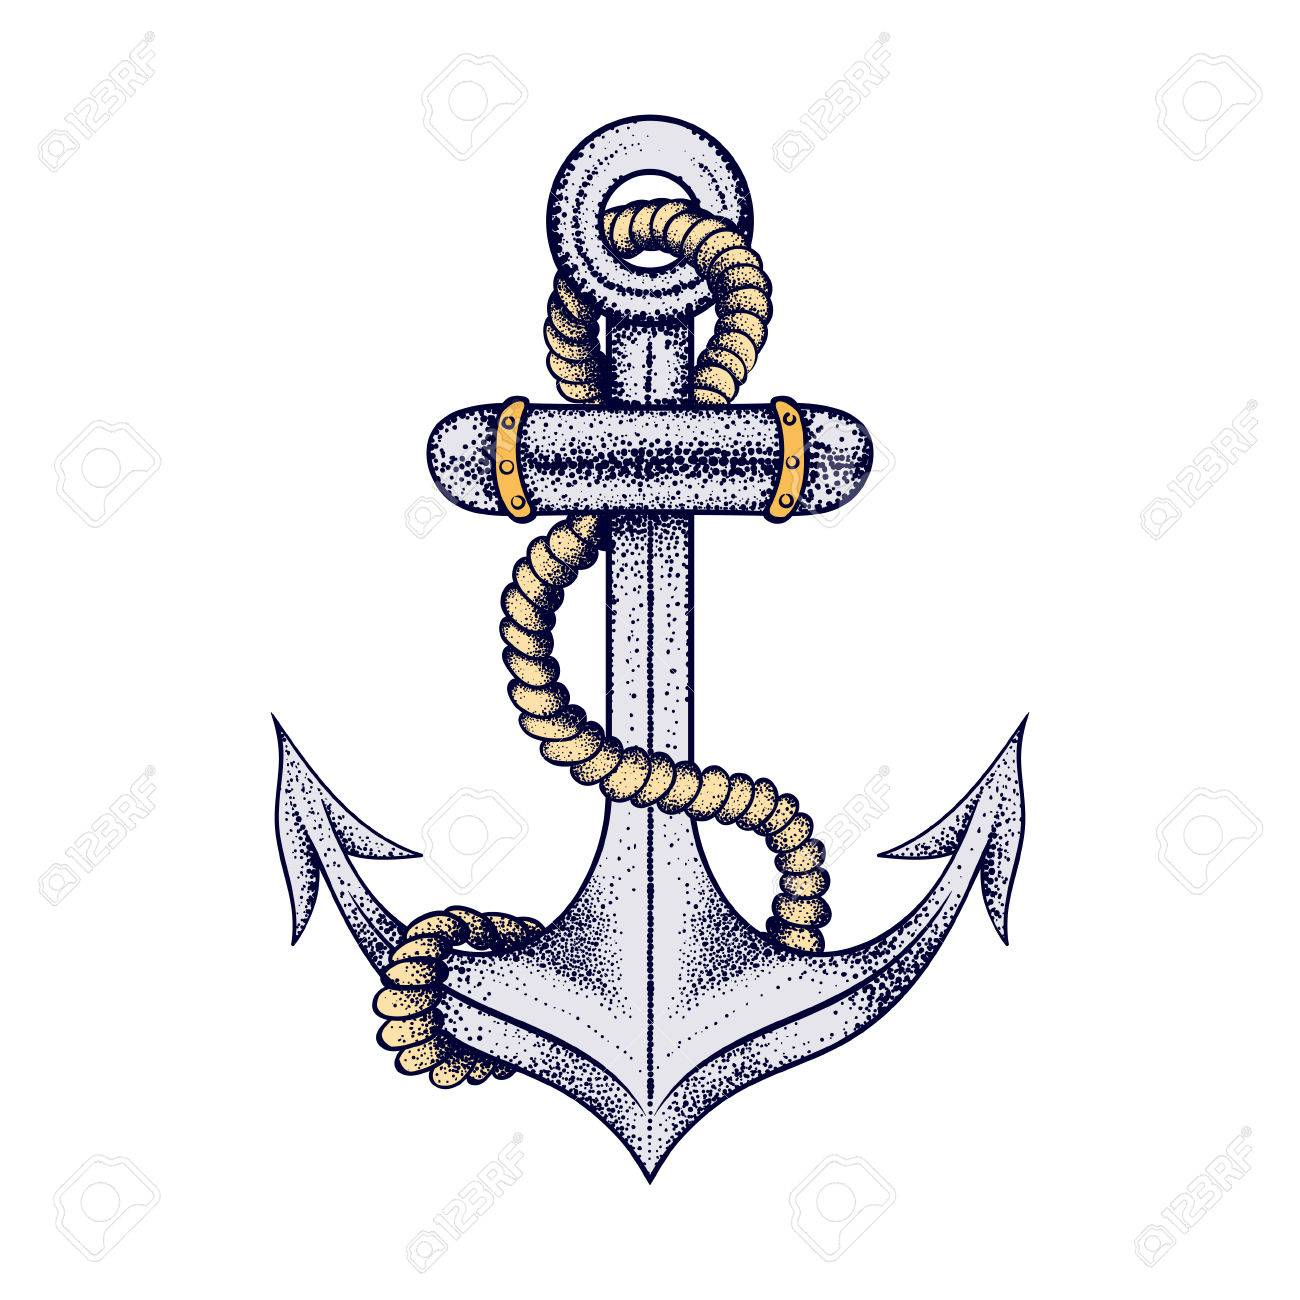 f49410e26 Hand drawn elegant ship sea anchor with rope, colored sketch for tattoos  design or t